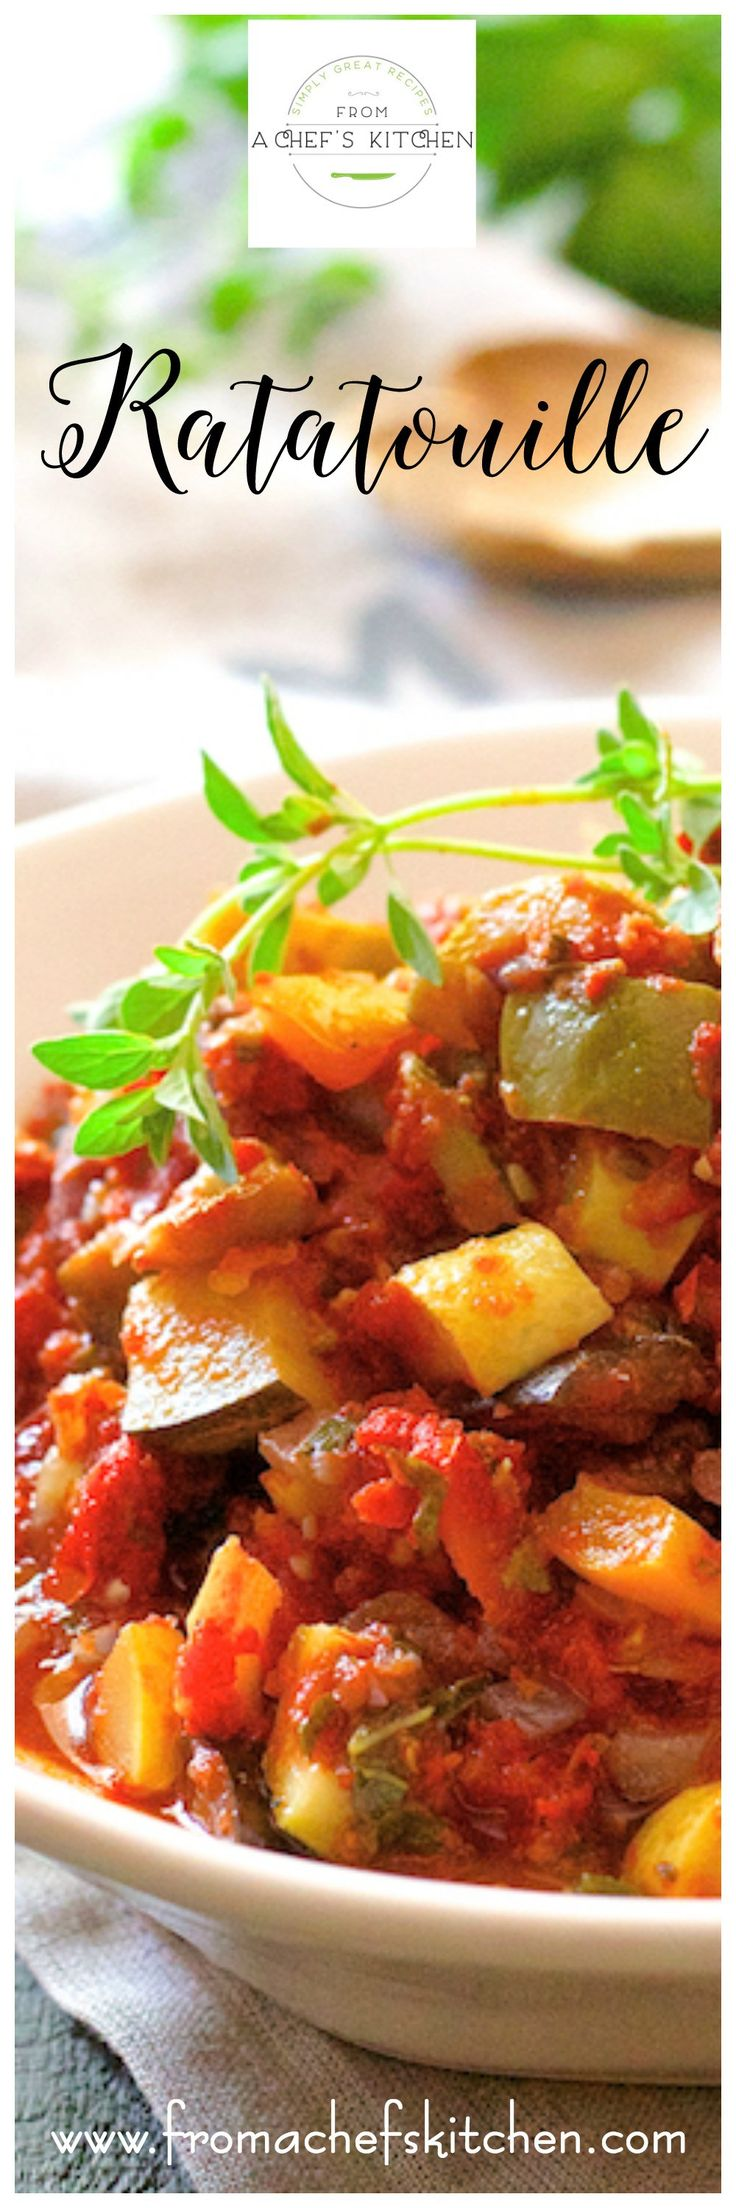 Blue apron zucchini ratatouille